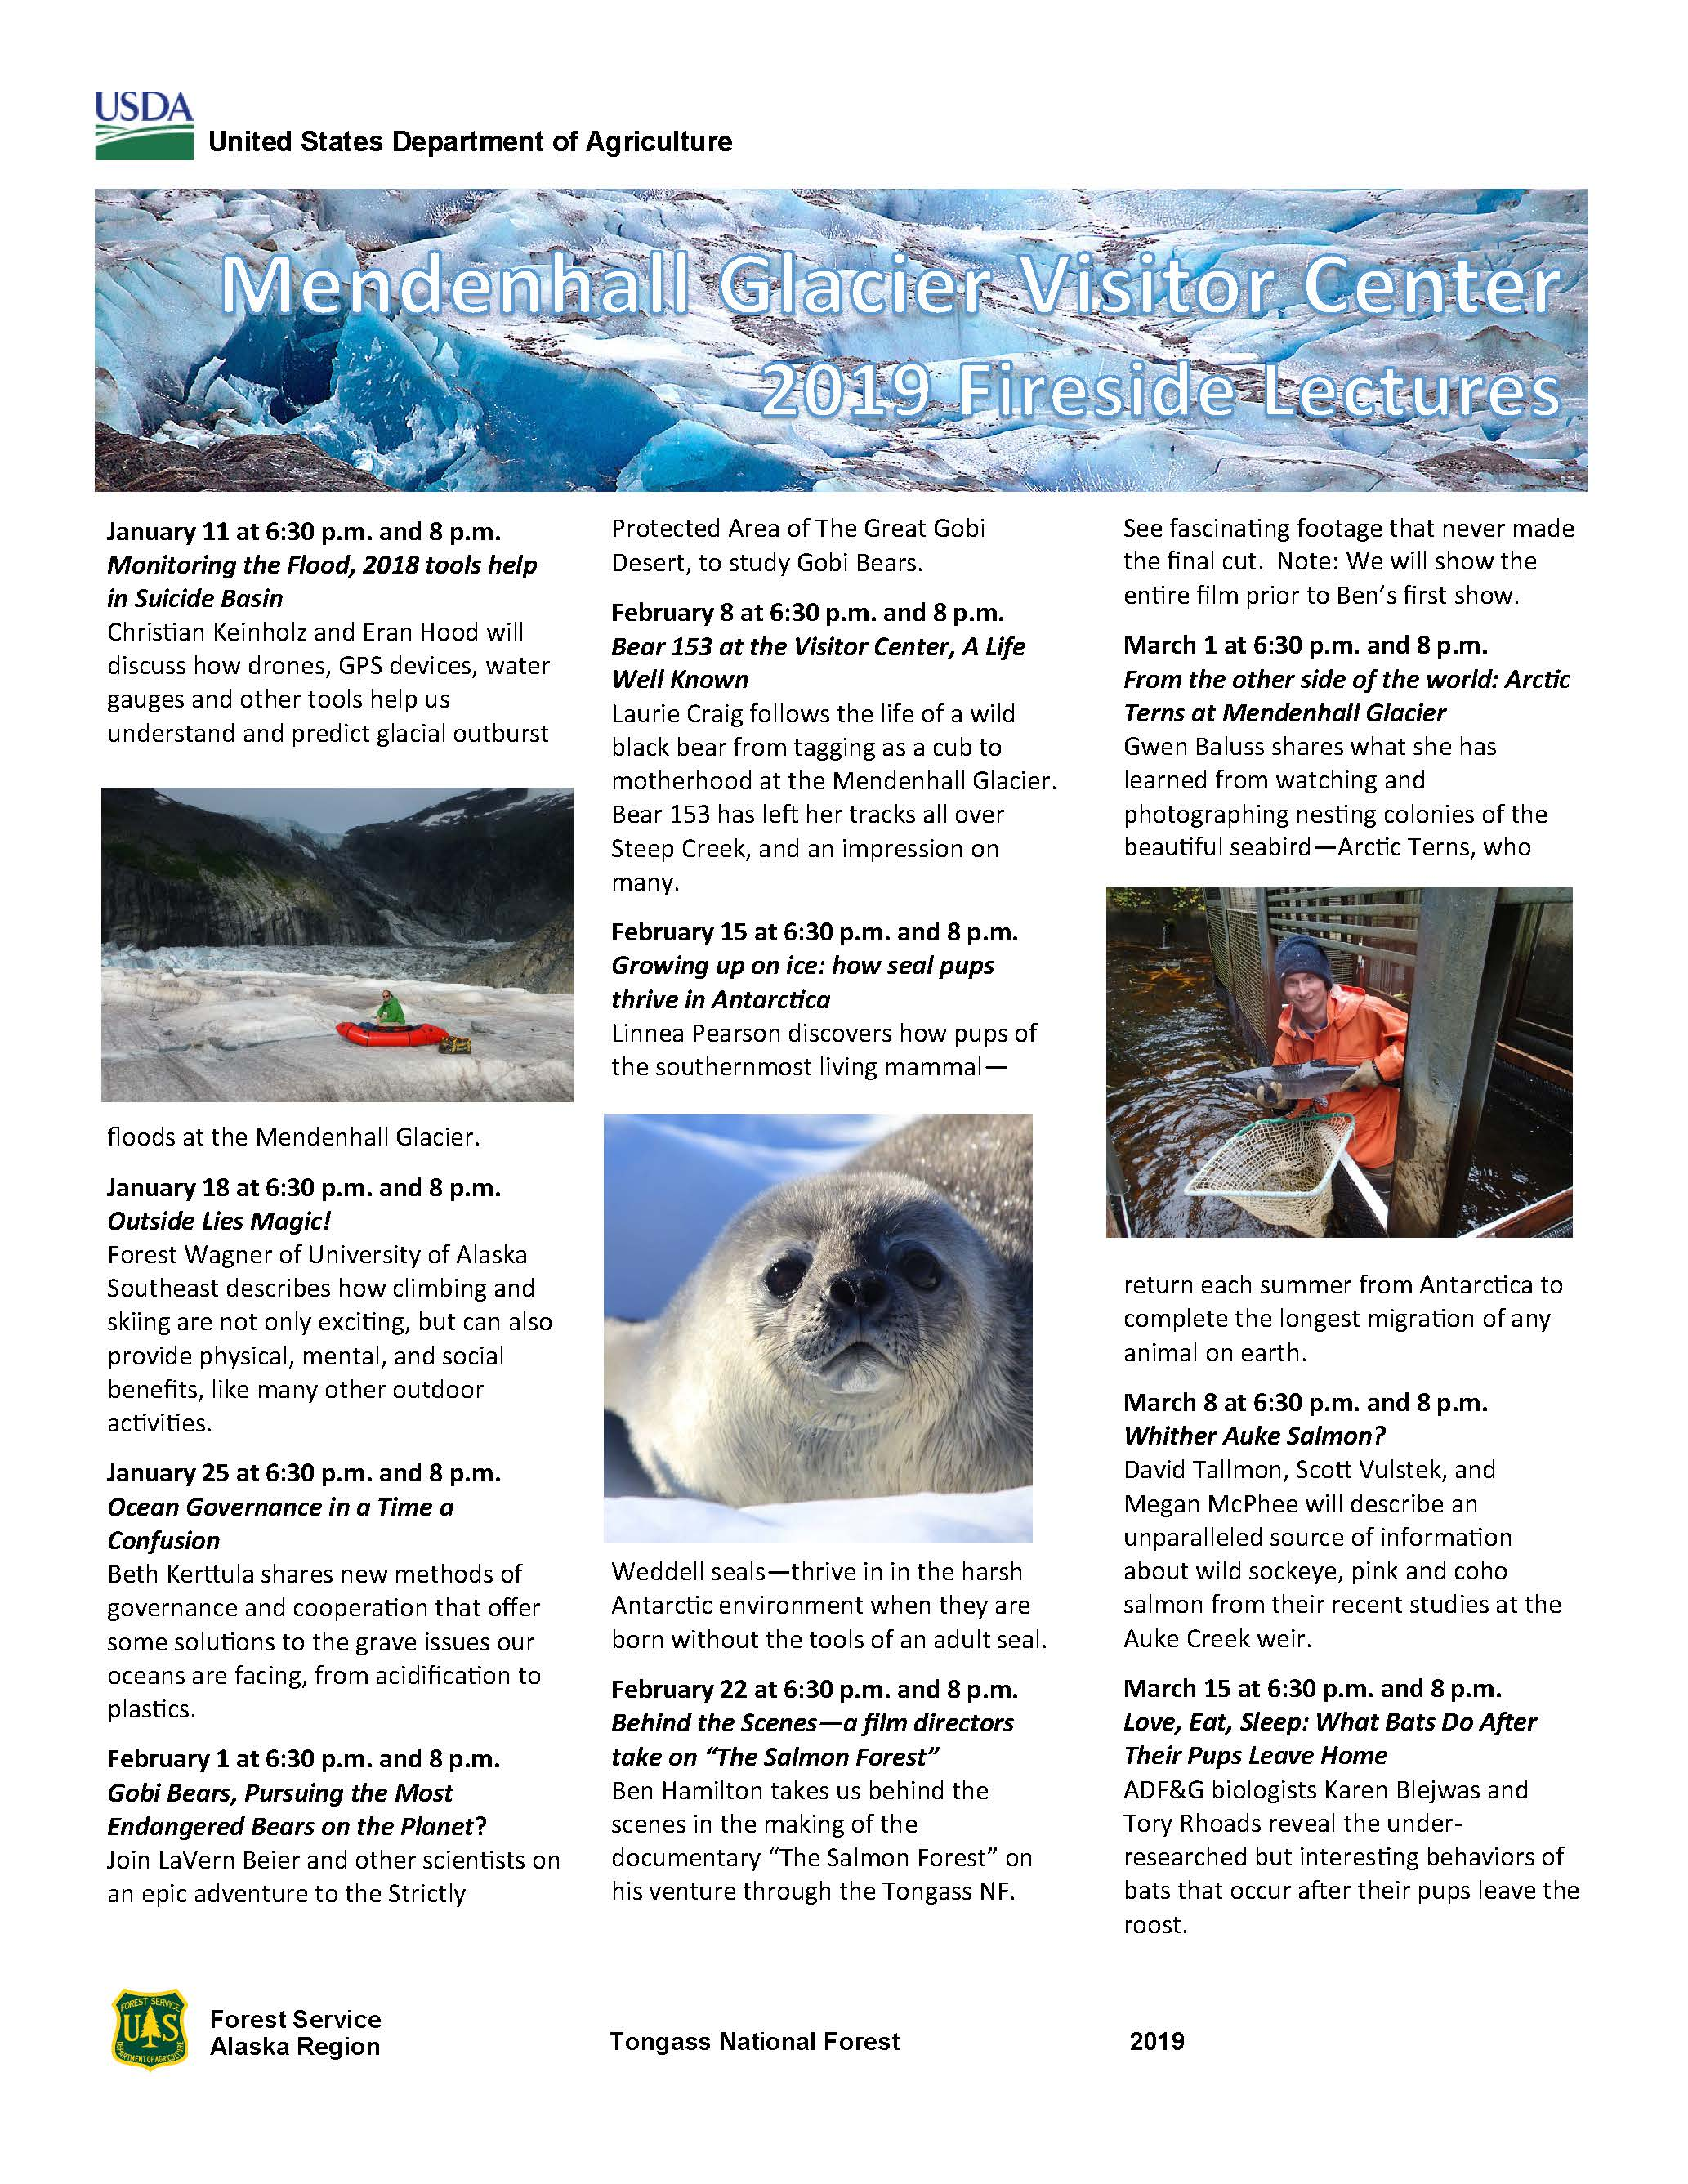 Mendenhall Glacier Visitor Center 2019 Fireside Lecture Schedule